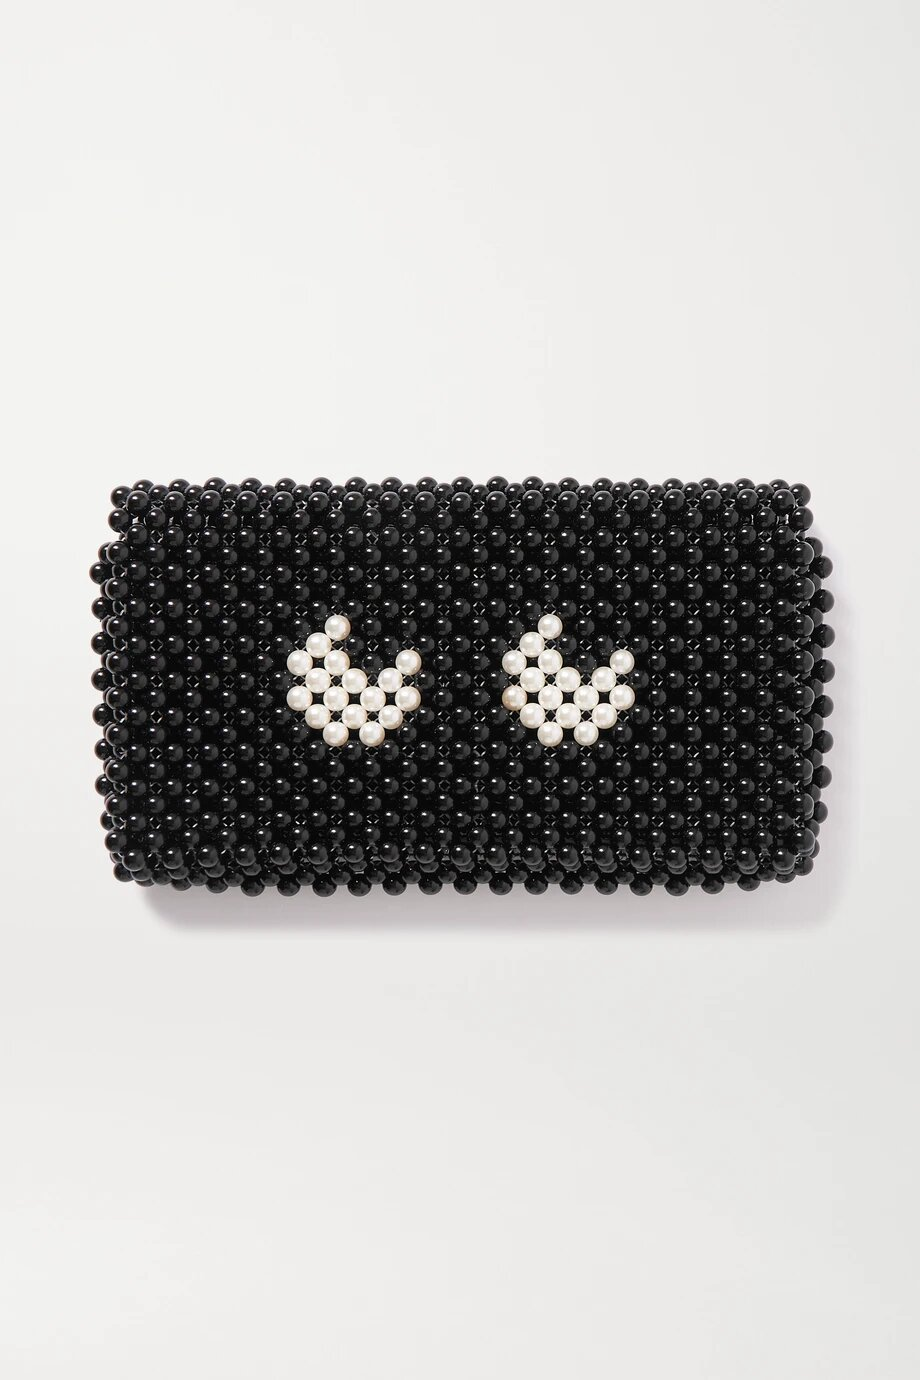 Anya Hindmarch Eyes Leather-Trimmed Beaded Clutch 1074лв